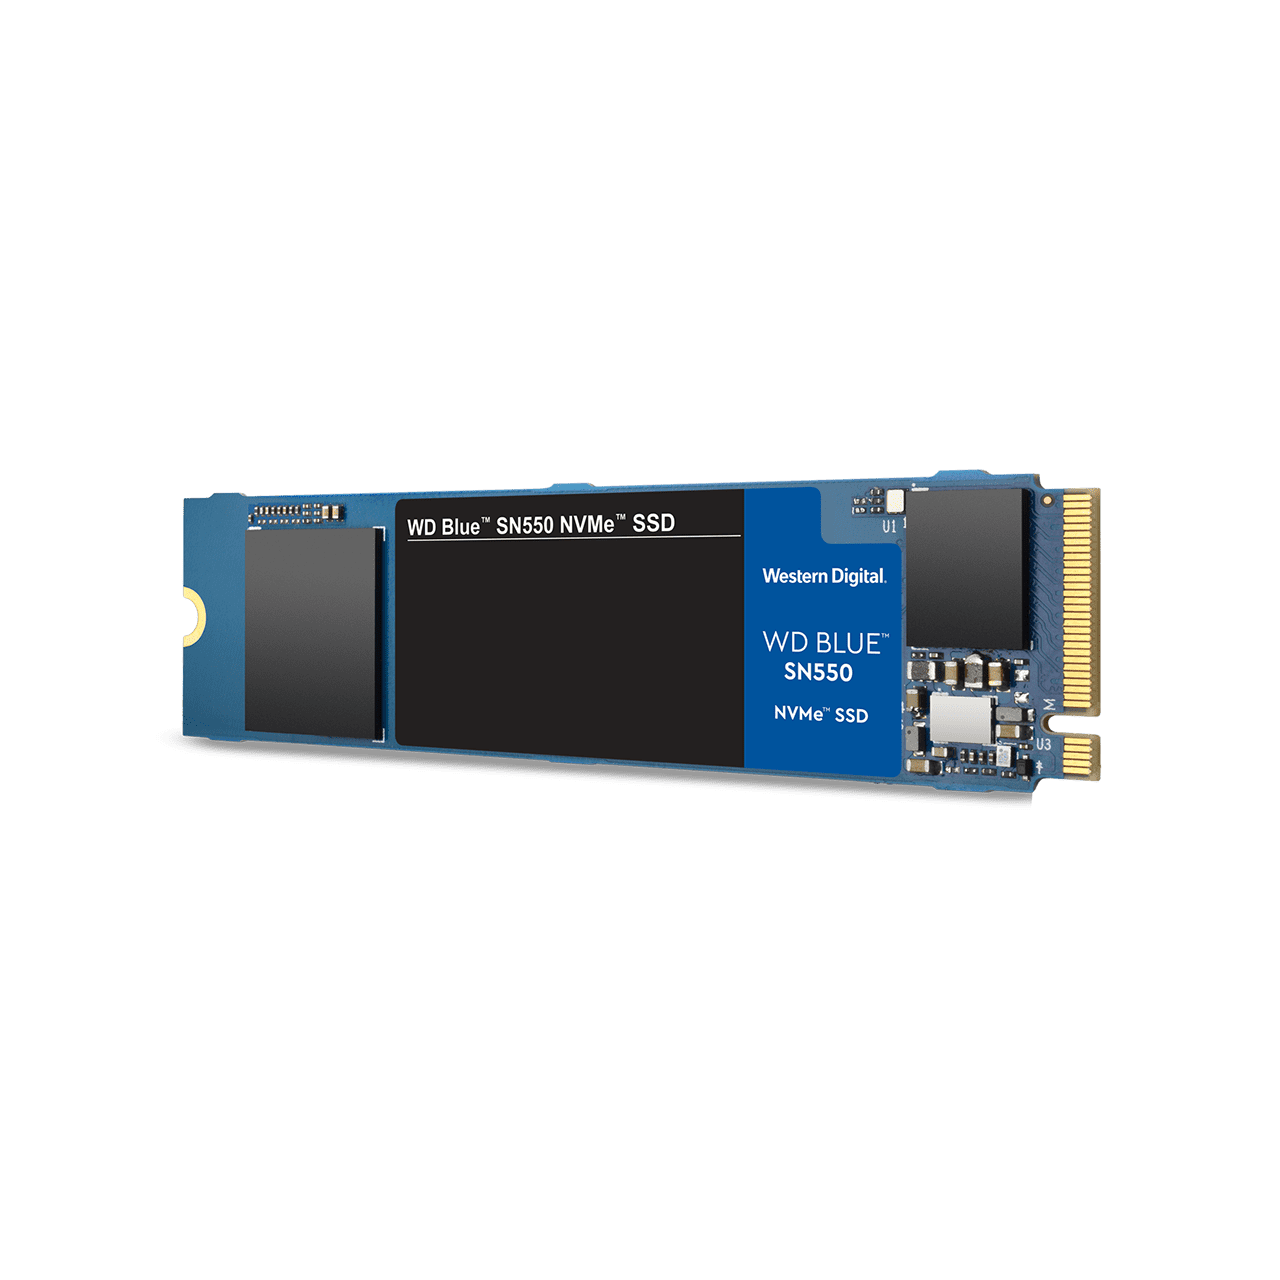 wd_blue_sn550_ssd_angle-left-png-thumb-1280-1280